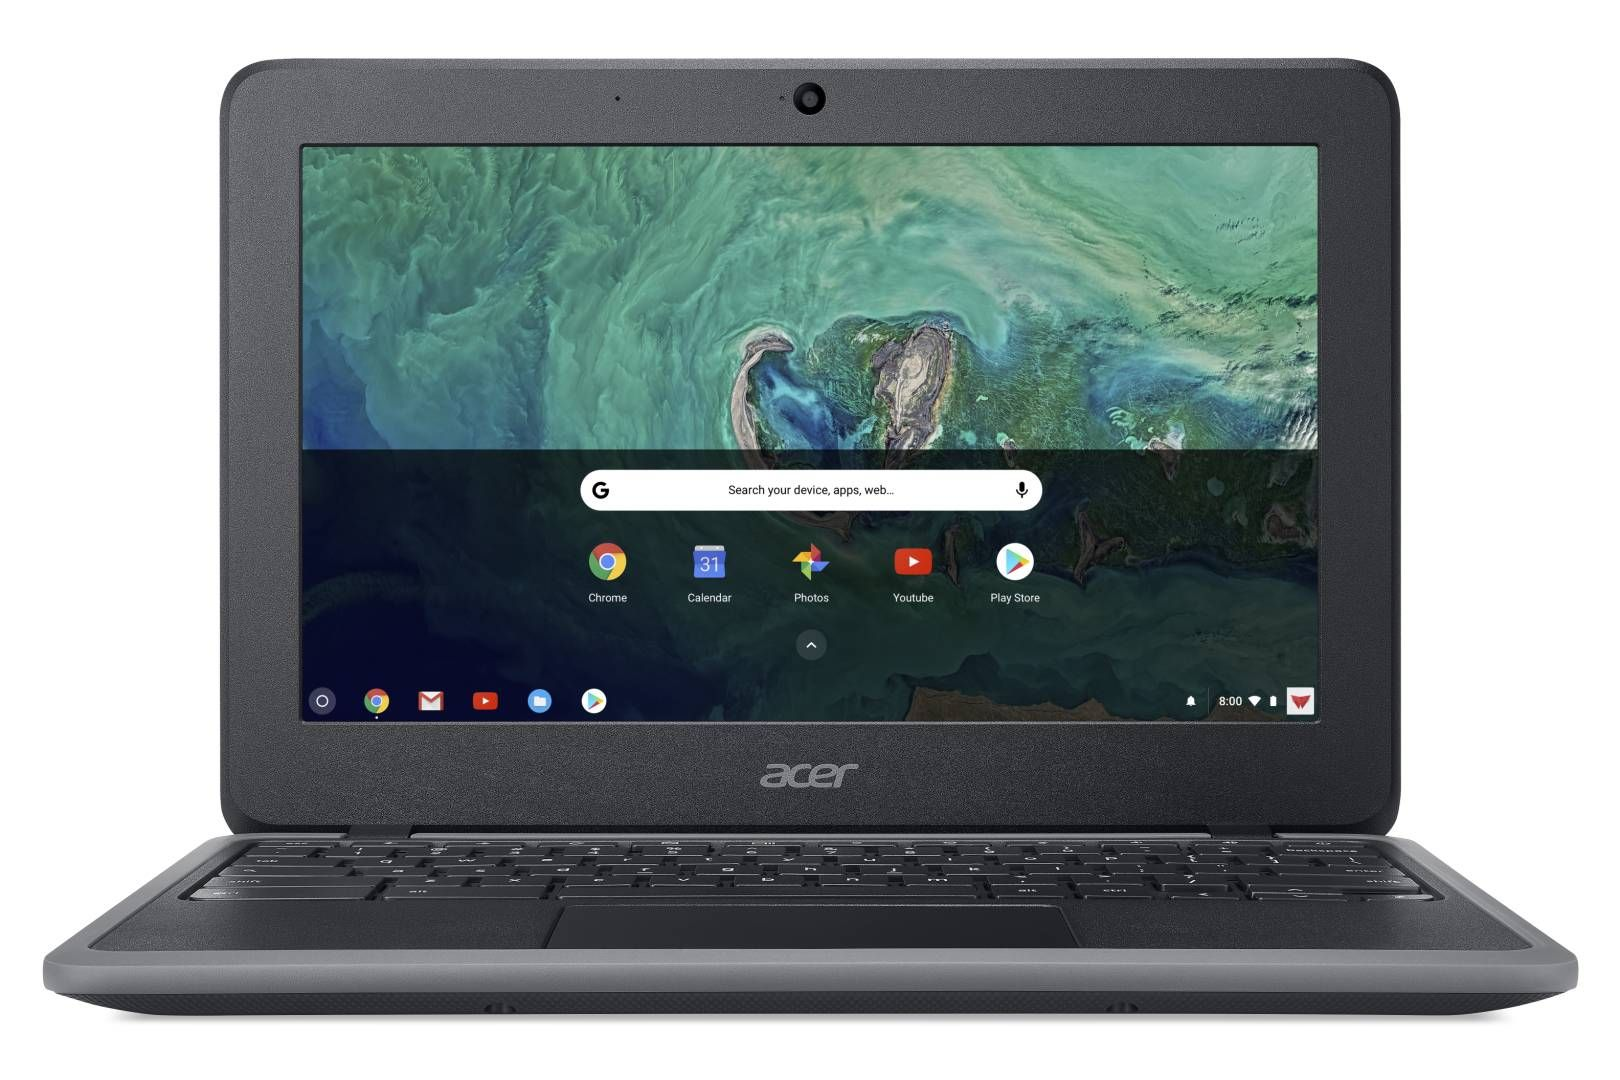 Acer C732 11.6in N3350 4GB Chromebook